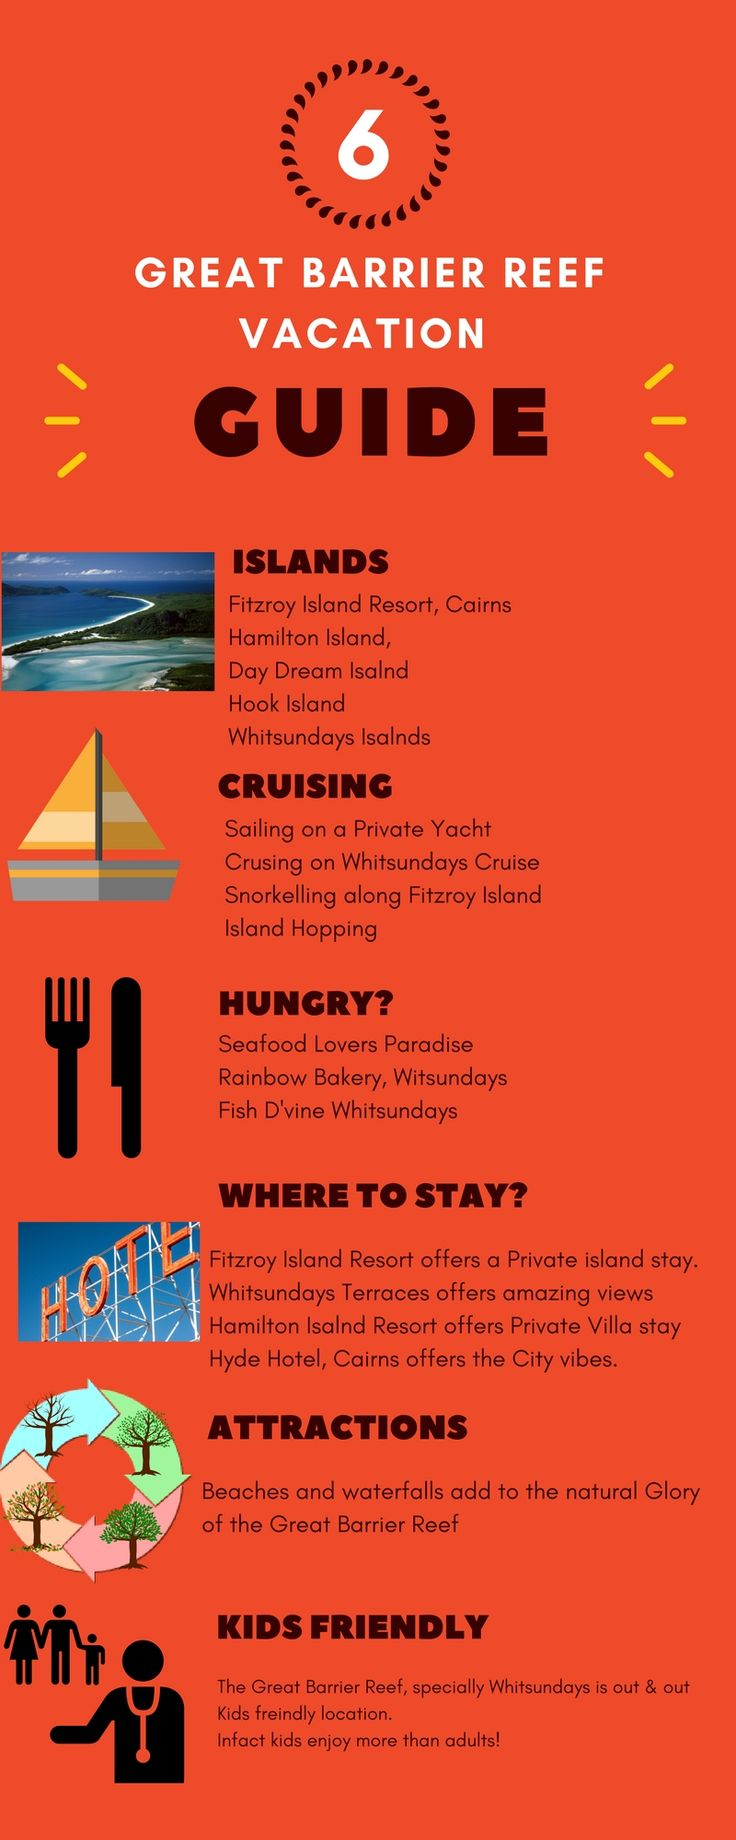 What to do at Whitsundays? Things to do with kids at whiytsundays? Great Barrier Reef Vacation Guide